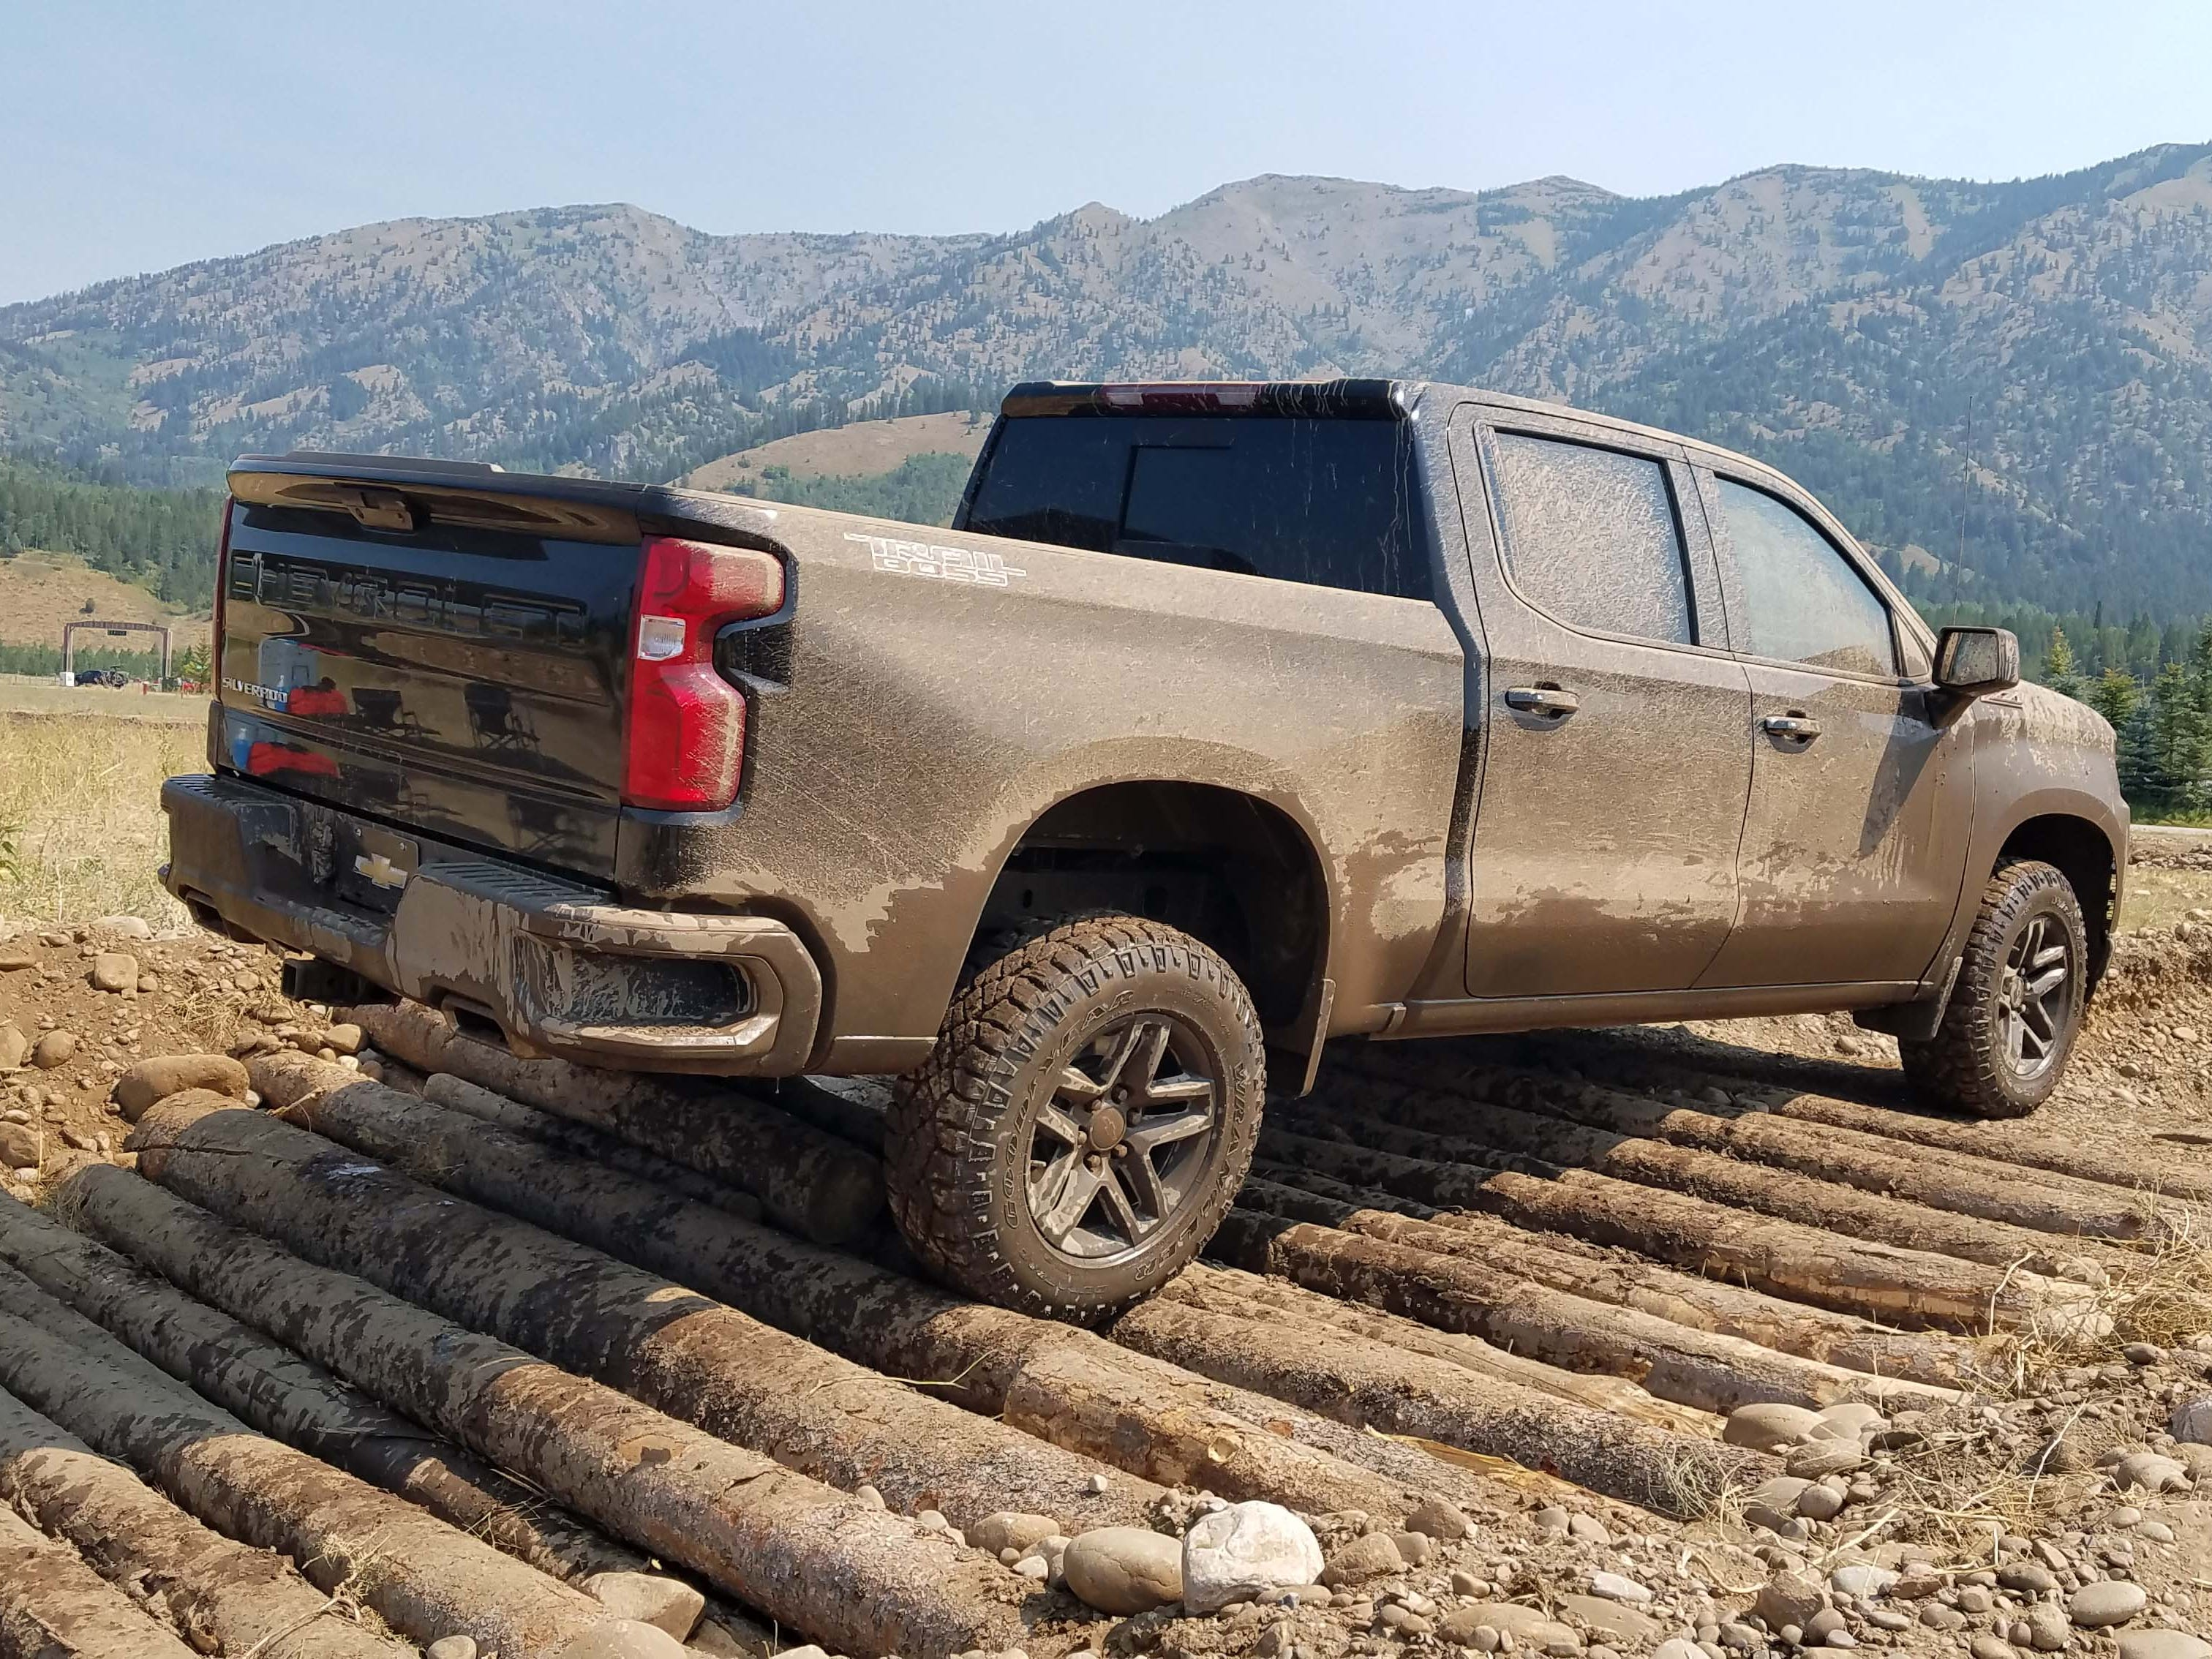 Let's get dirty. The 2019 Chevy Silverado Trail Boss navigates an off-road course in Wyoming.